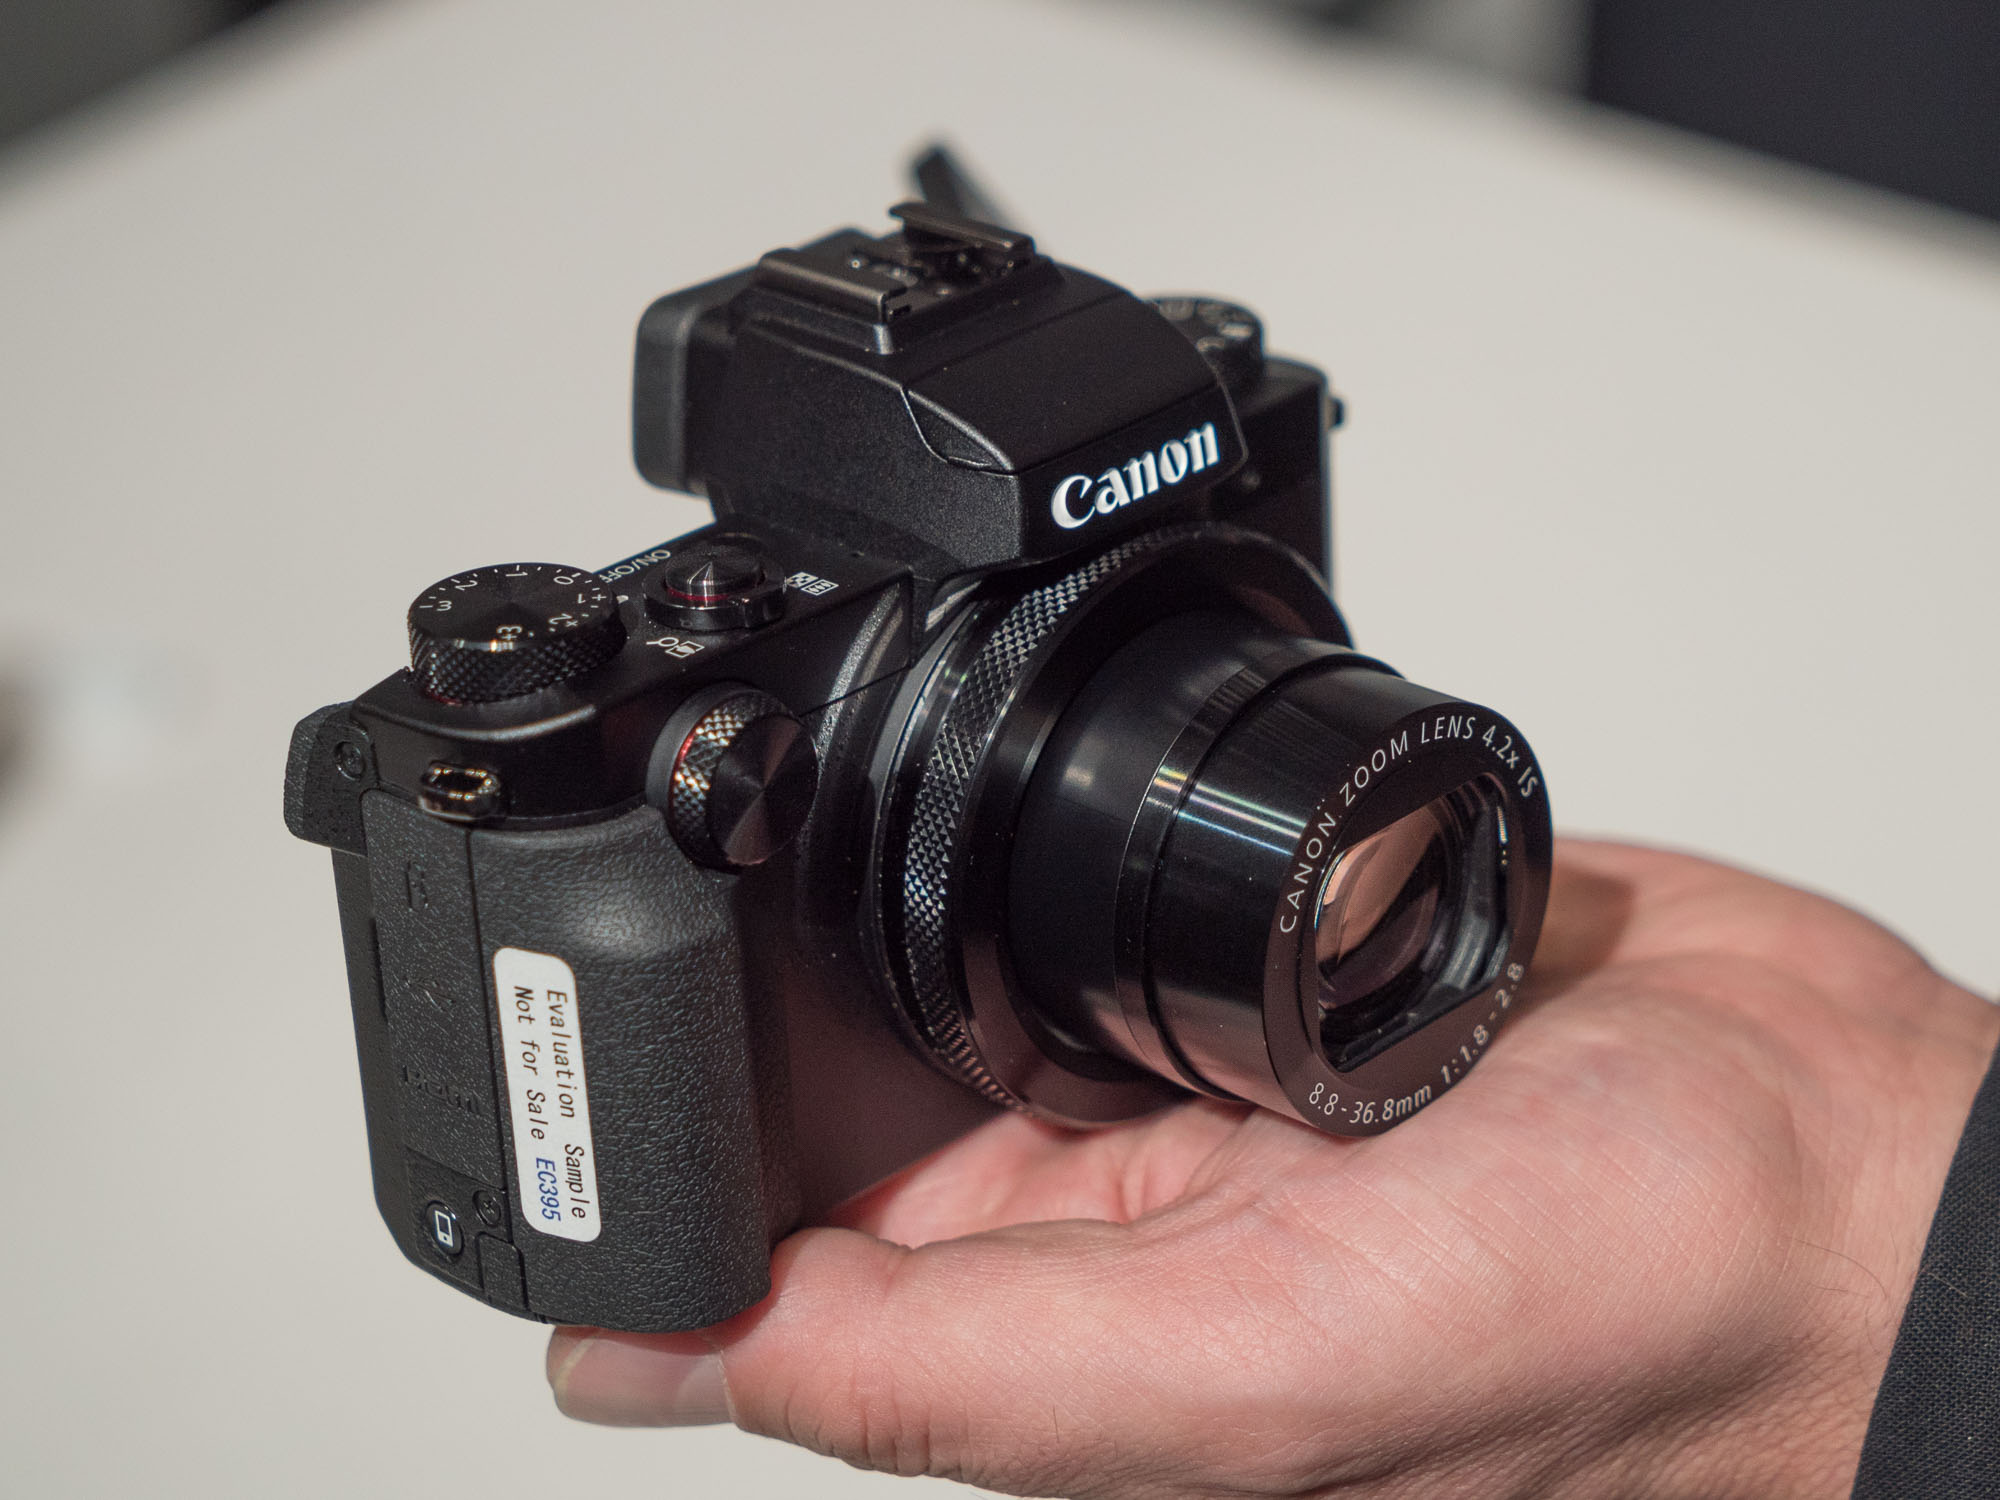 Hands On With Canons New Powershot G5 X G9 Compacts Digital Canon G5x Kamera Pocket Photography Review